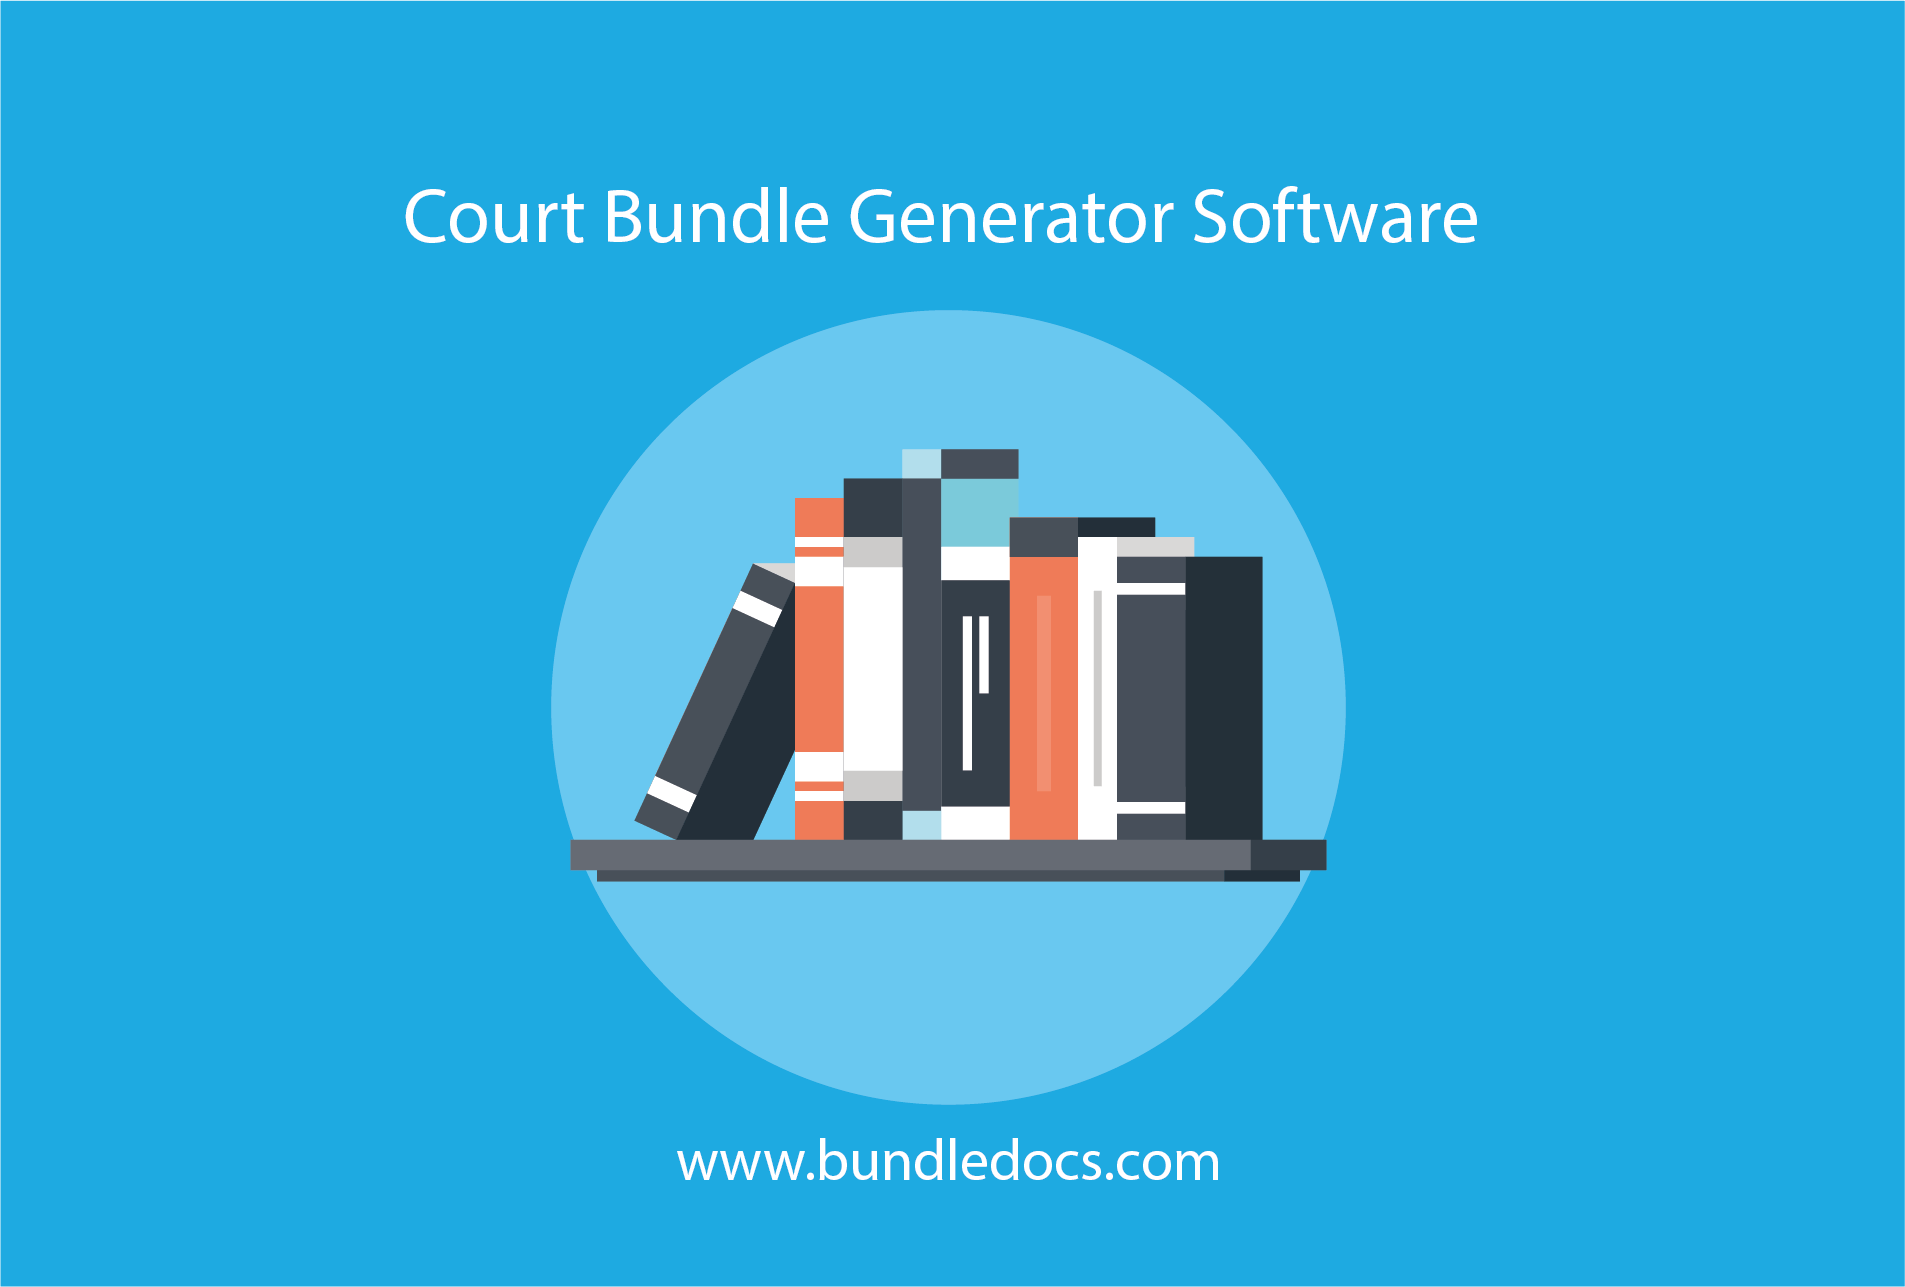 Discover the ultimate way to generate court bundles with Bundledocs